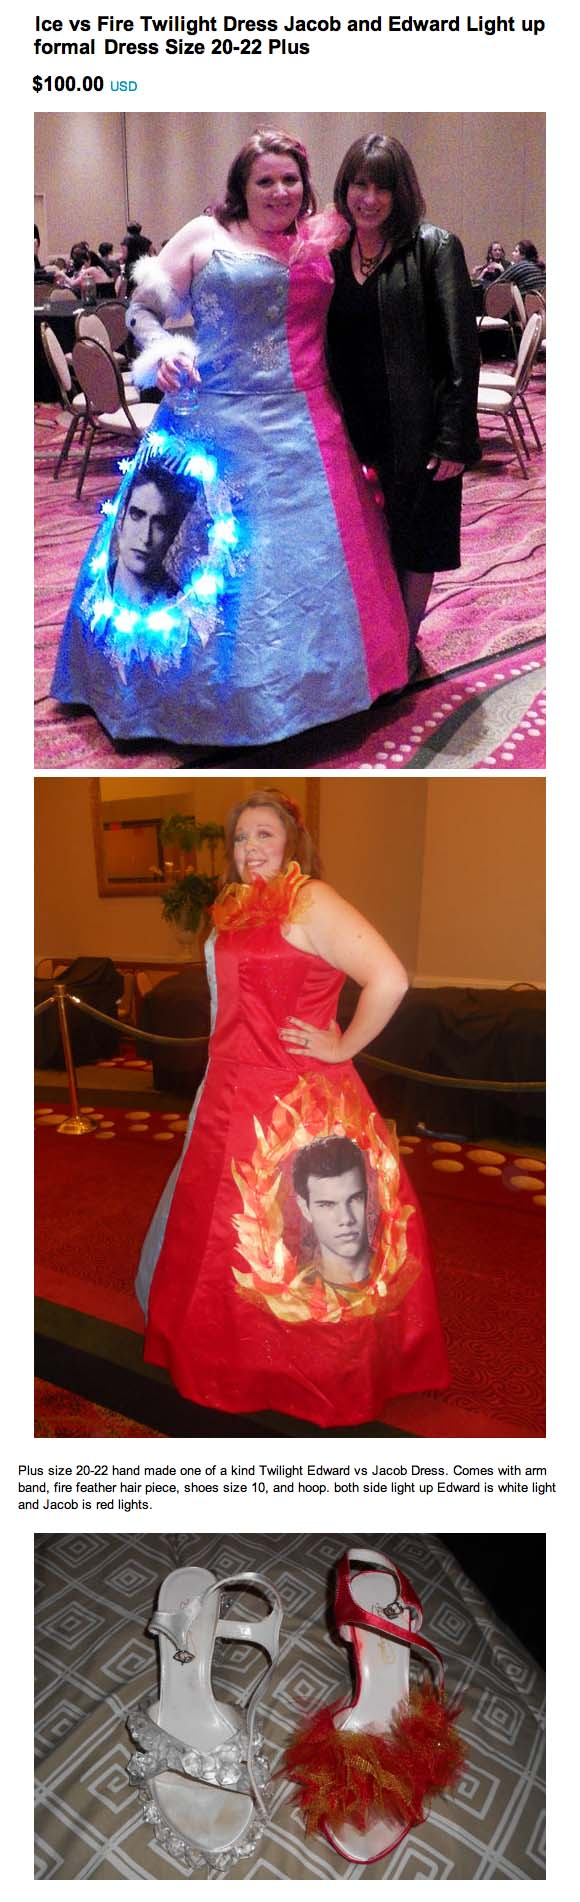 Twilight-themed prom dress infinitely sadder than not going to prom at all.